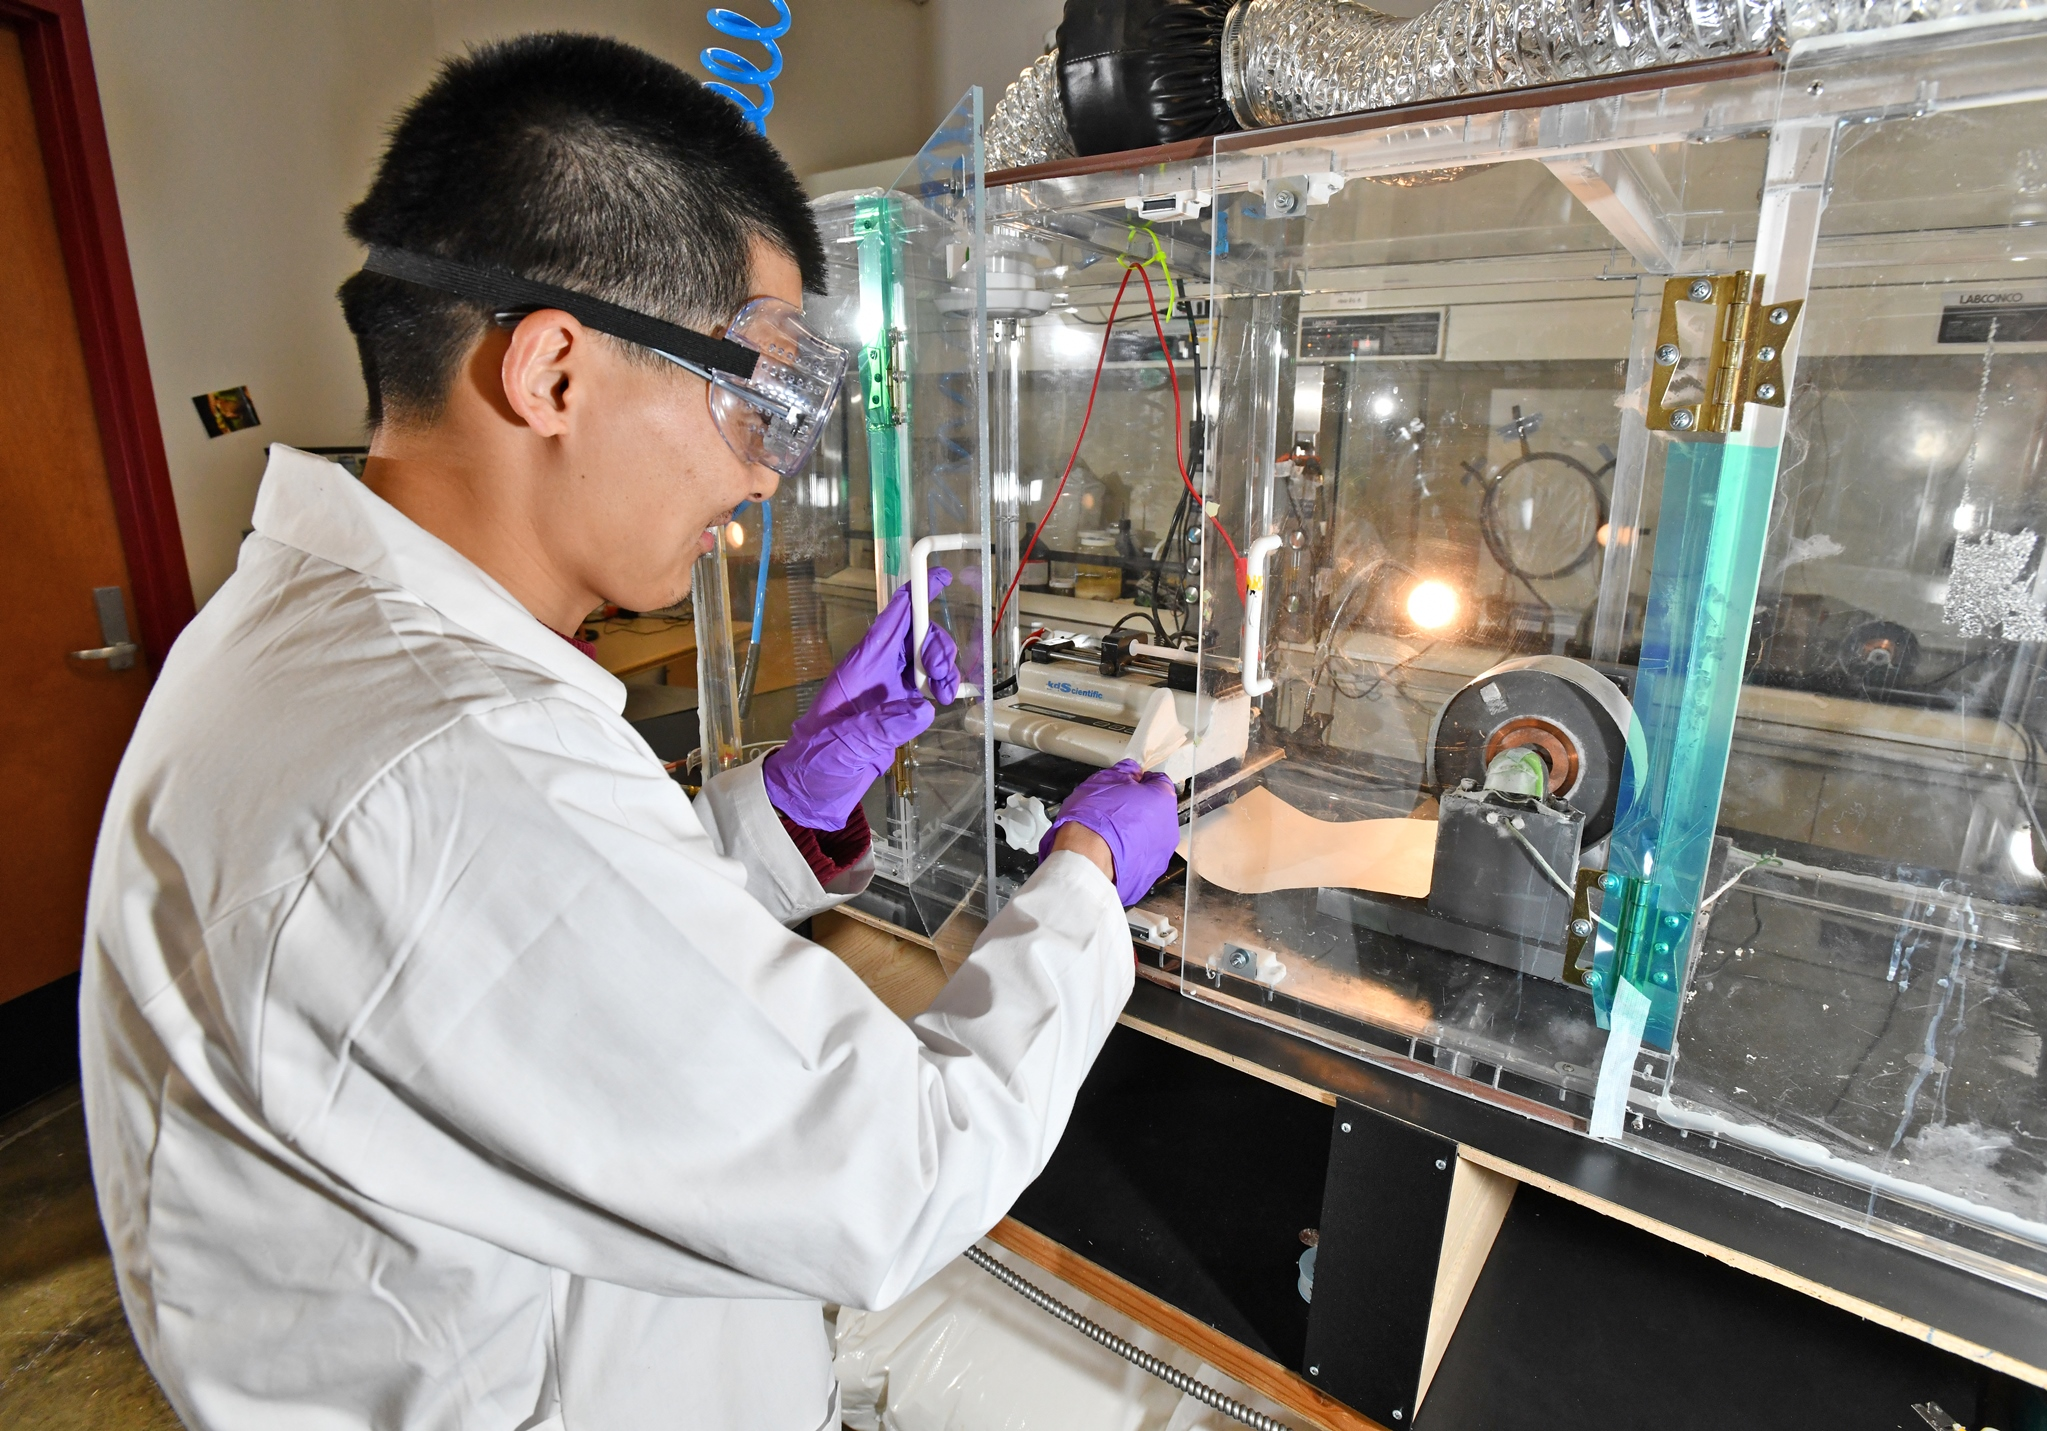 Dr. Fei Wang, AAI lead chemist, demonstrates lab-scale electrospinning at the Bounce Innovation Hub. A high voltage is applied at the tip of a syringe containing a polymer liquid. As the voltage is increased, the liquid deforms toward the nearest grounded surface and ultimately ejects as a thread with rapidly increasing surface area to offset the electrical charge. Formulations are carefully tuned to balance between the effects of charge build-up, which extend the jet and drive the reduction in diameter, with surface tension, which pulls back and may result in bead or droplet formation. The small collector on the right is used for rapid prototyping of new polymer blends and basic research, particularly the relationship between fiber structure and performance.